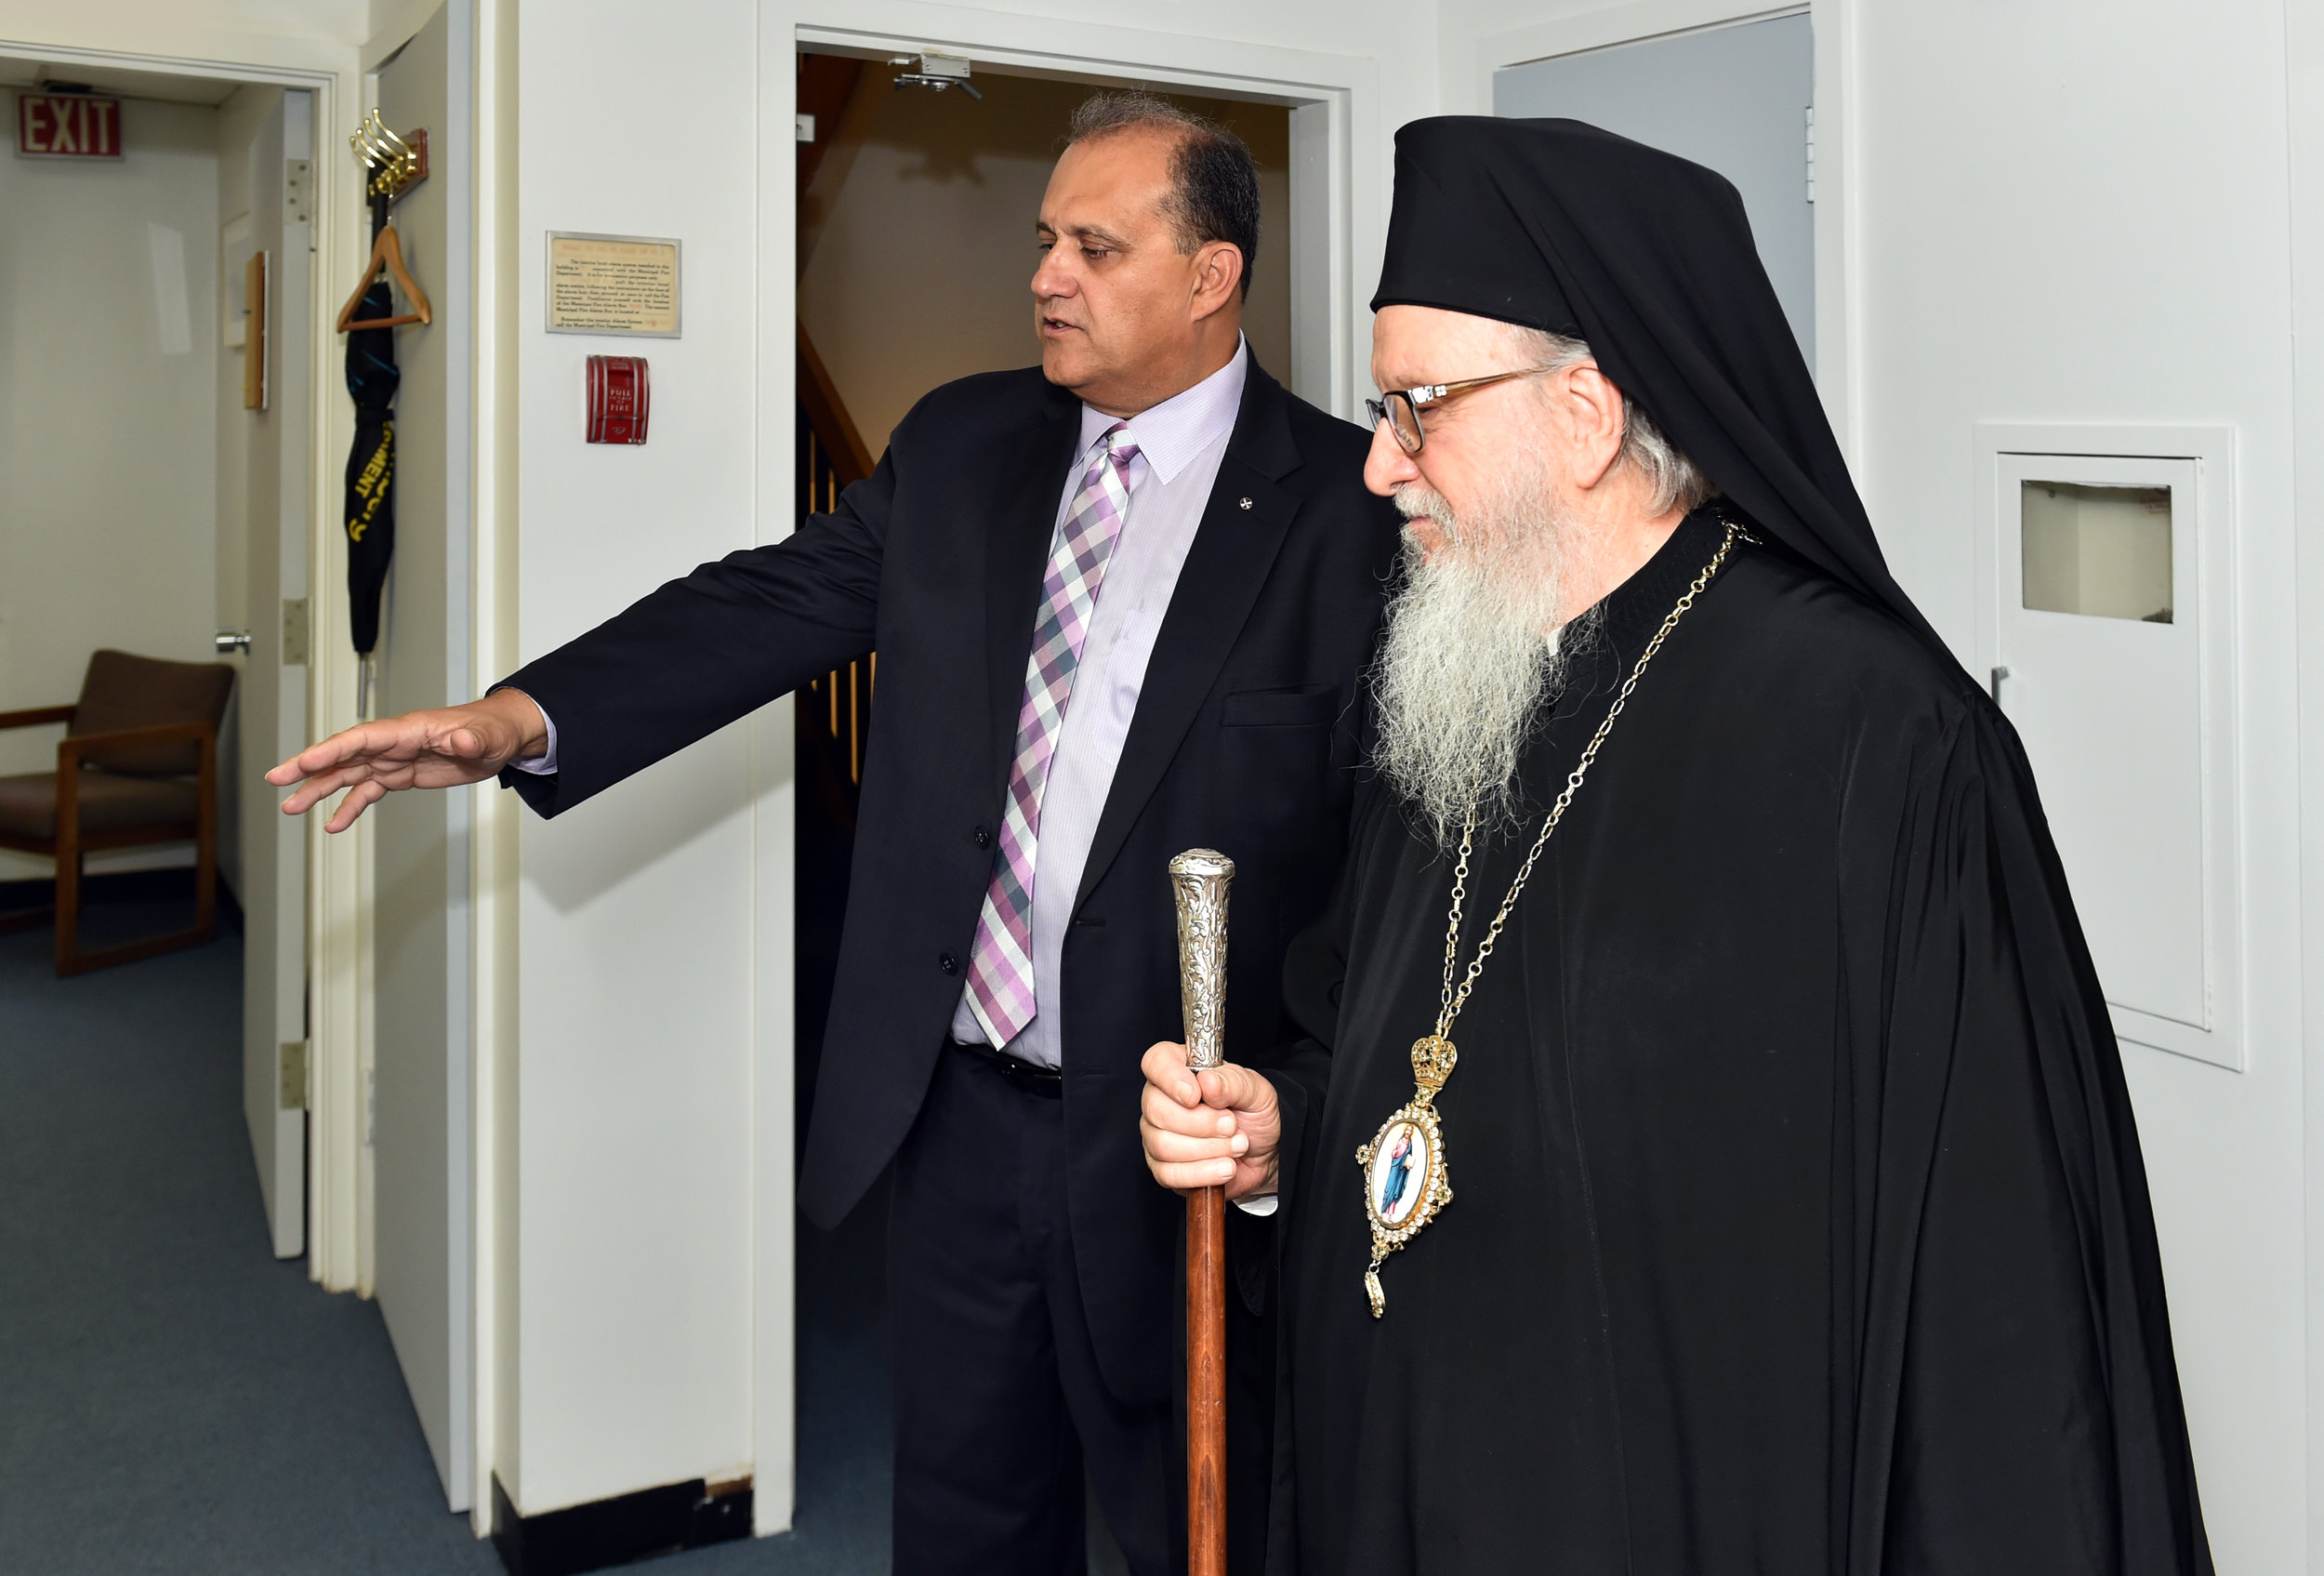 Nick Larigakis provides a tour of the Hellenic House to His Eminence Archbishop Demetrios of America.